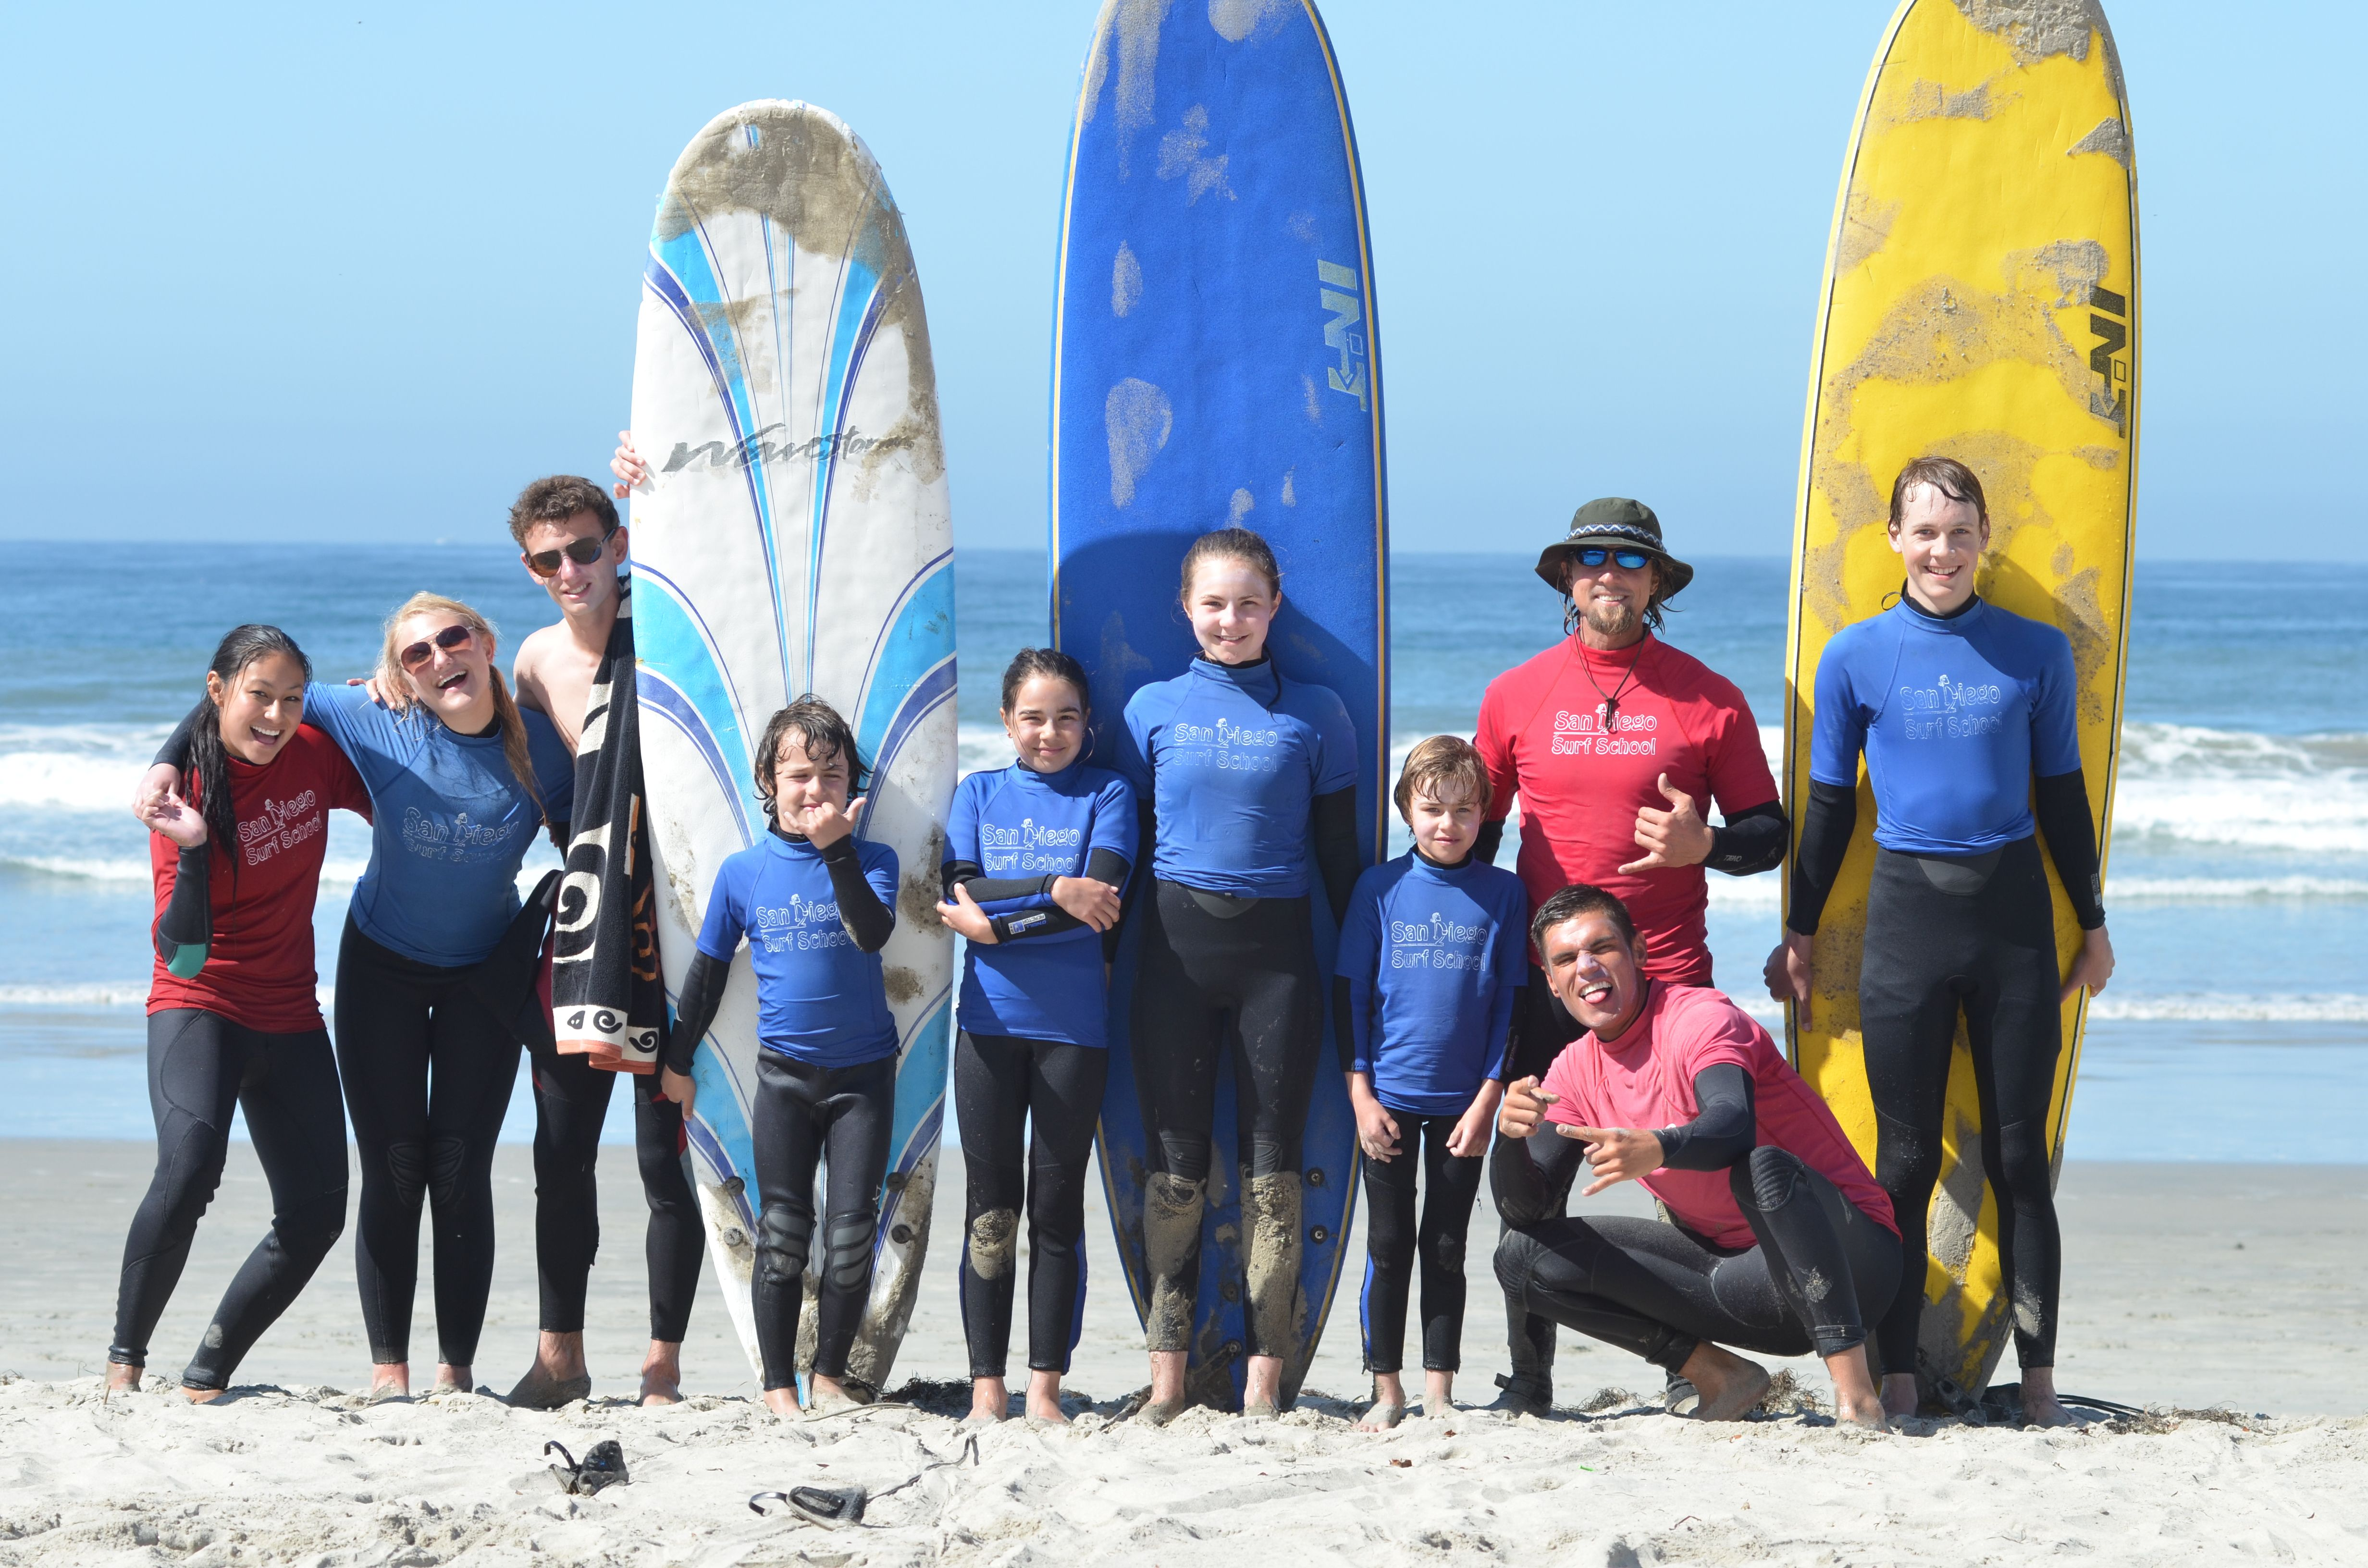 #SanDiego #SurfReport Sunday, June 7  2-3 ft- Knee to Waist High  FAIR CONDITIONS  Another beautiful day for surfing!! Kid's Summer Camps available at www.sandiegosurfschool.com for more details and prices or come on down to the shop at 4850 Cass St. or call at (858) 205-7683. #privatesurflessons #SummerCamps #Surfing #SanDiegoSurfSchool